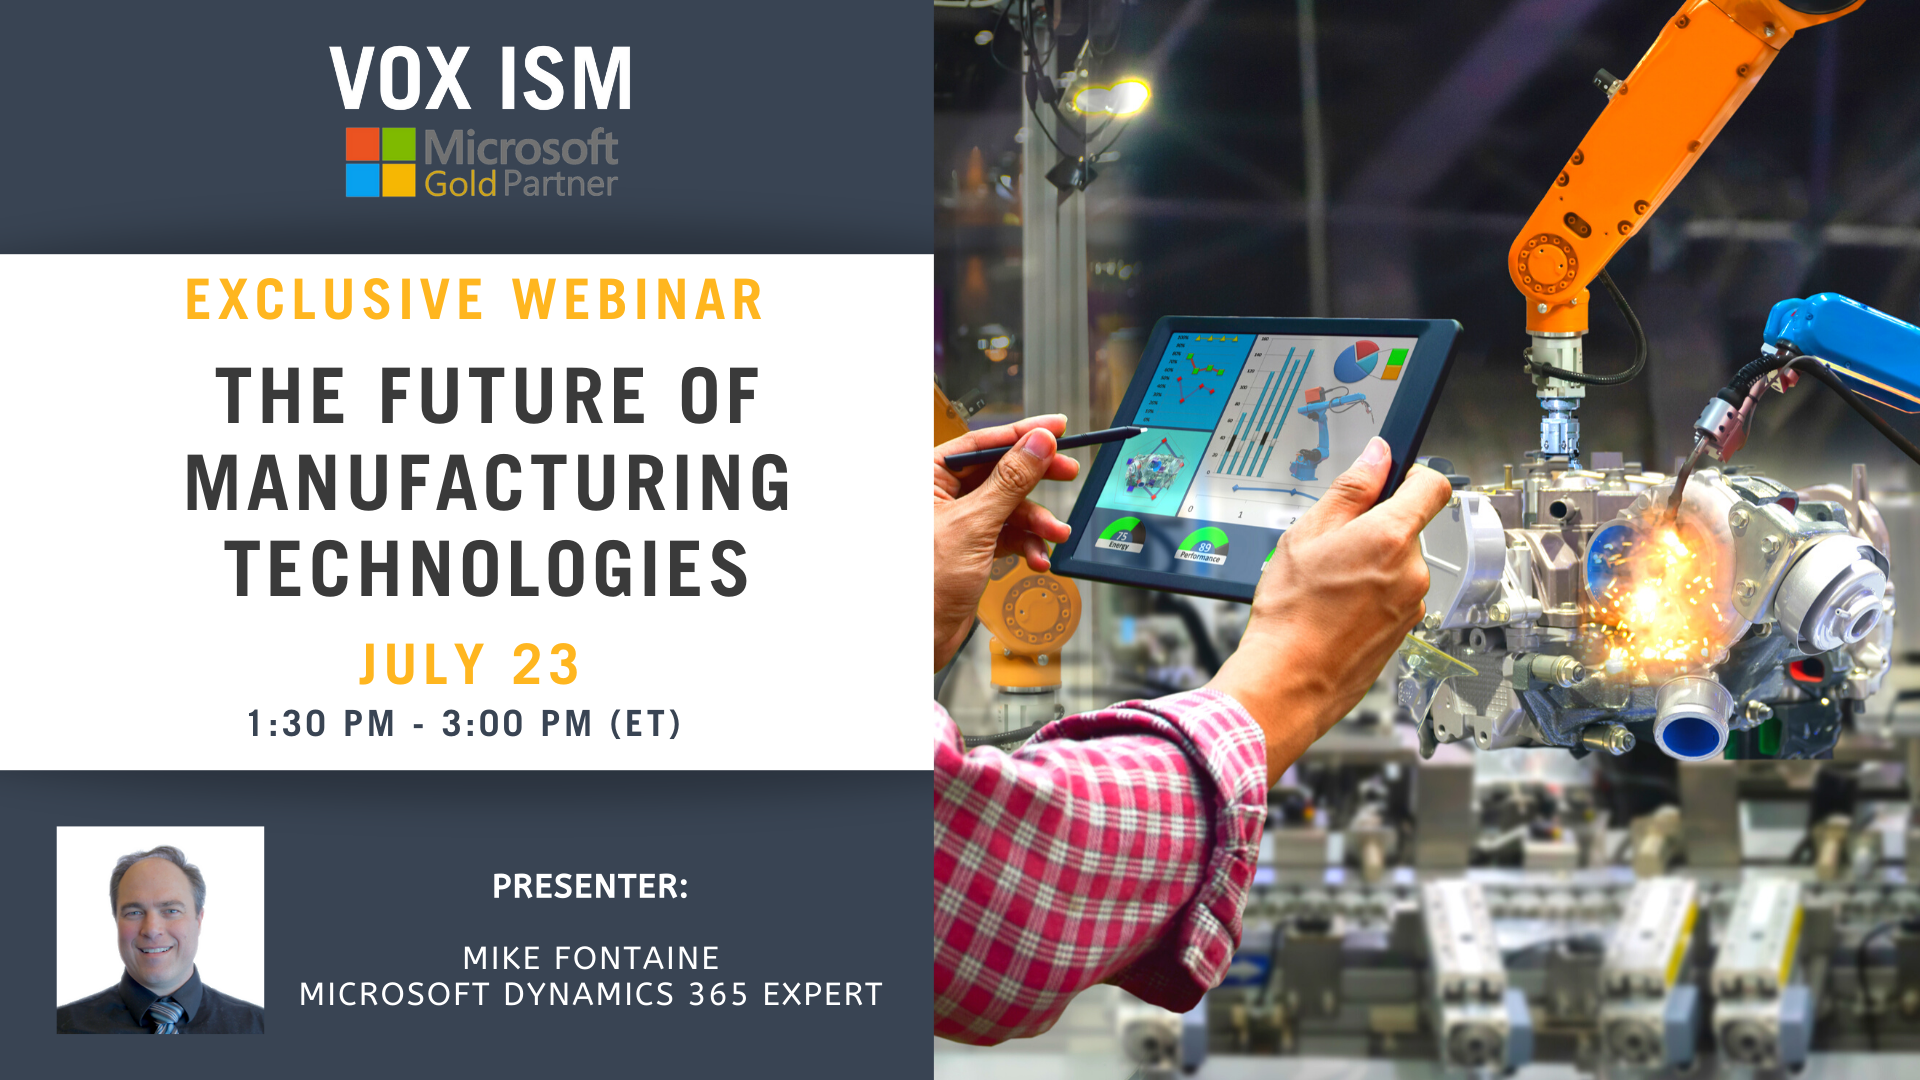 The Future Of Manufacturing Technologies - July 23 - Webinar VOX ISM